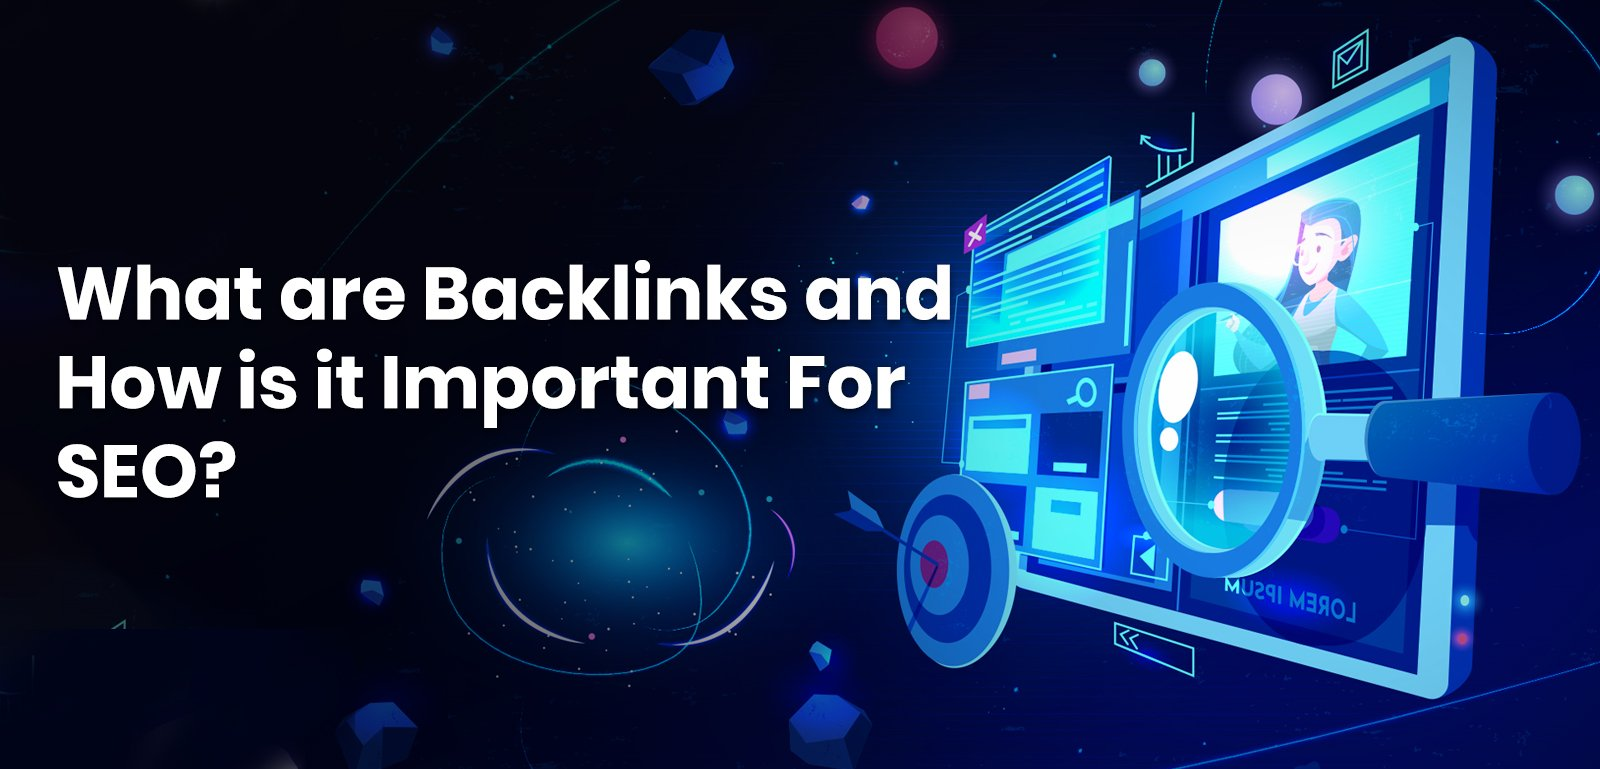 What are Backlinks and how is it important for SEO?